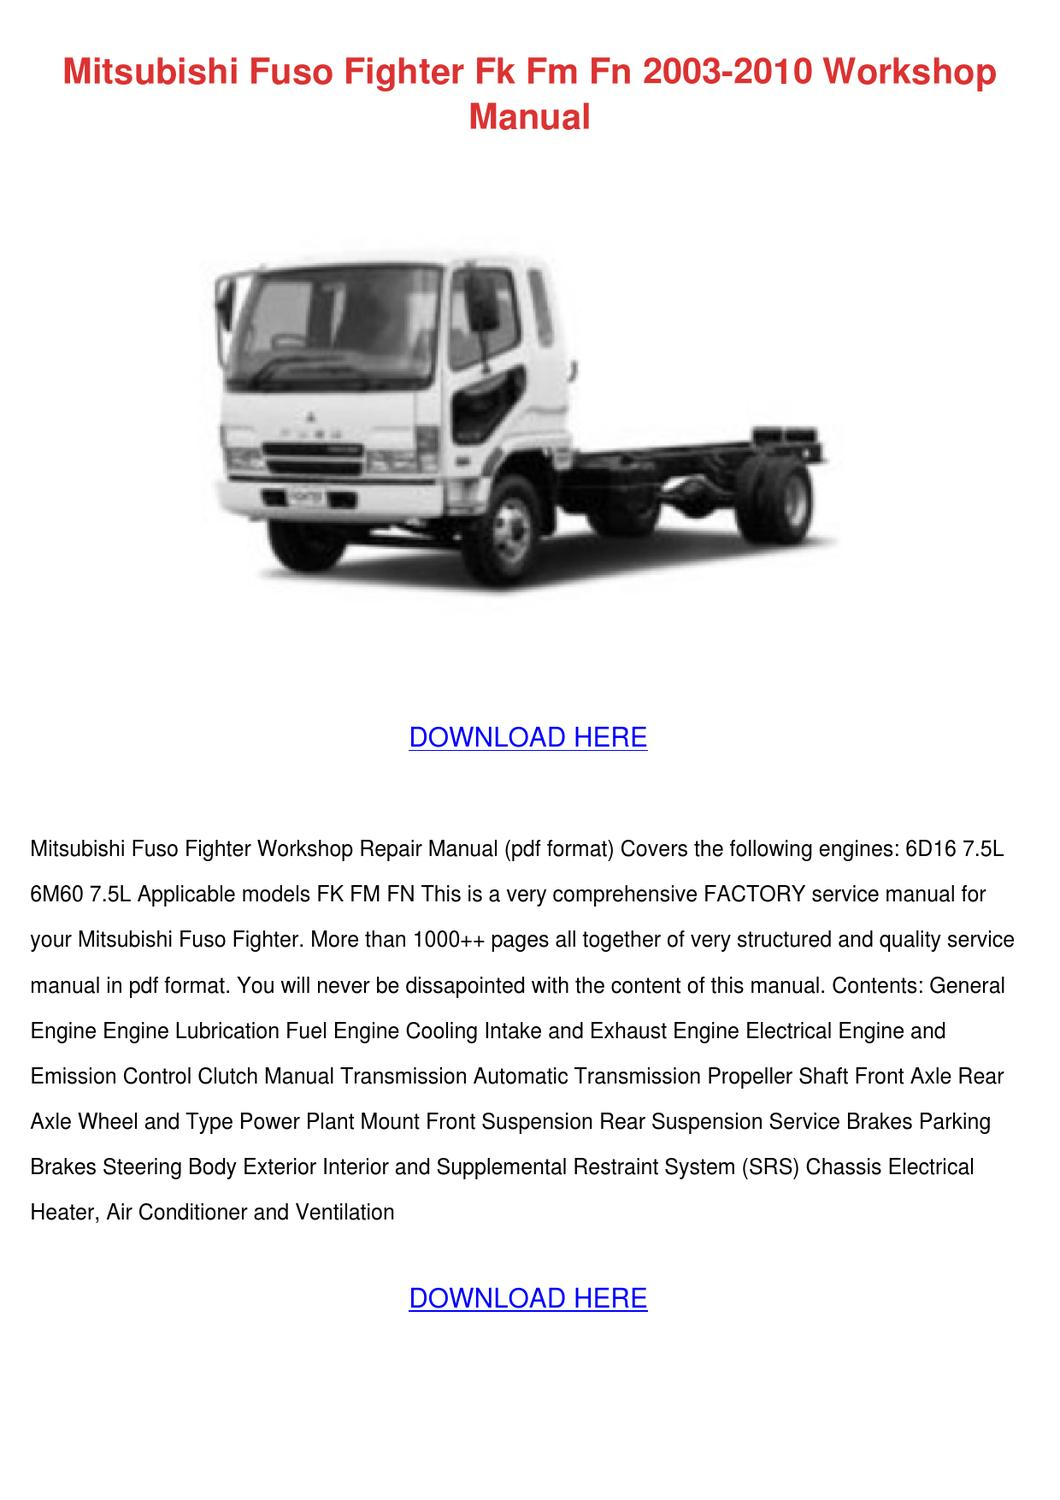 Wiring Diagram Mitsubishi Canter Wiring Diagram & Fuse Box Source · mitsubishi  fuso fighter fk fm fn 2003 2010 wo by asia hafter issuu rh issuu com